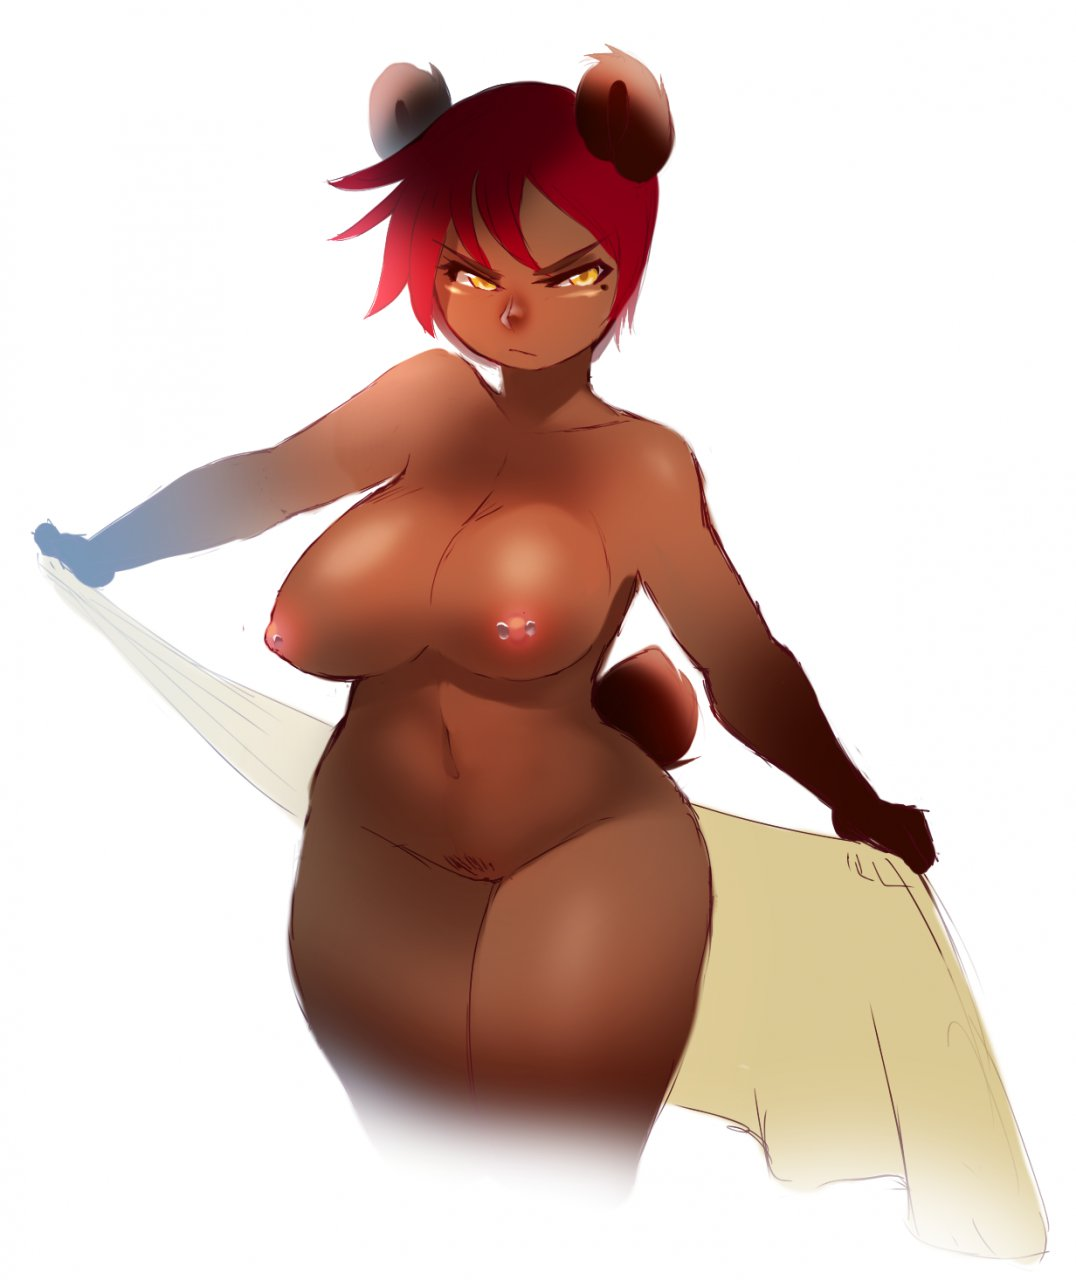 e621 anthro areola bear big_breasts breasts erect_nipples female flat_belly hair hi_res kanel looking_away mammal moxy_(character) natural_breasts nipple_piercing nipples nude piercing pubes pussy red_hair short_hair simple_background solo thick_thighs towel unamused white_background wide_hips yellow_eyes